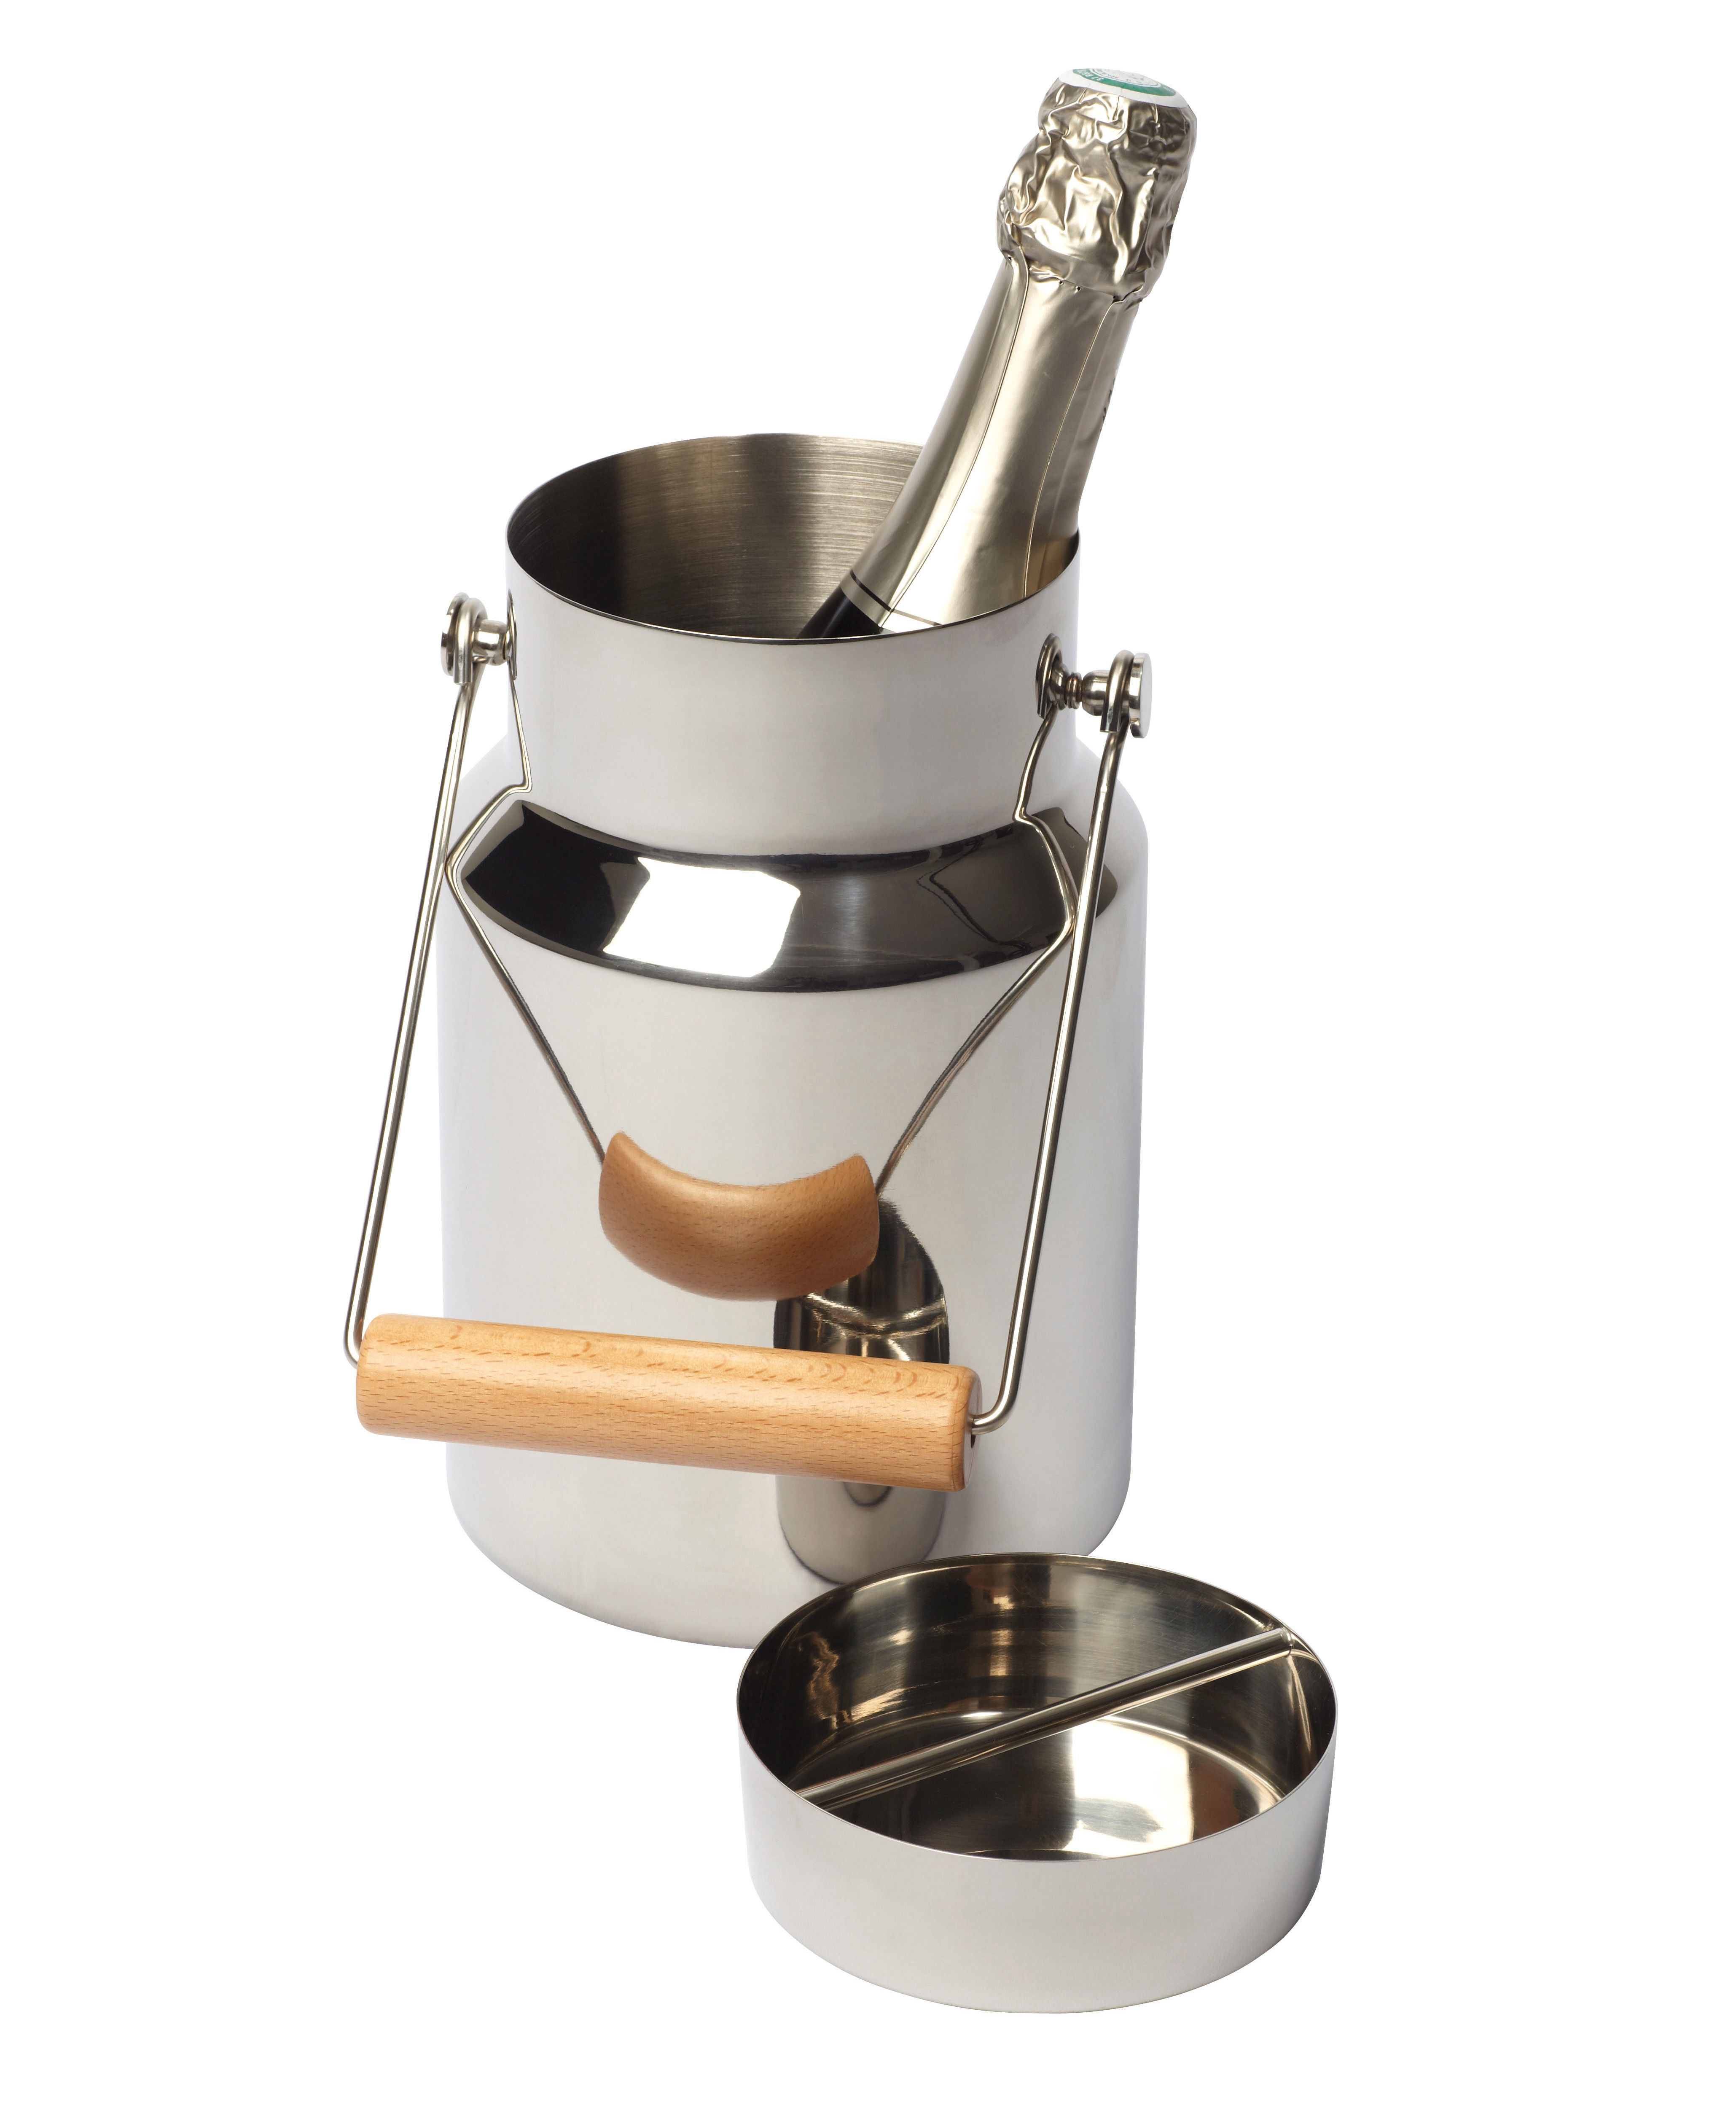 Decoration - Funny & surprising - Timbale Champagne bucket by L'Atelier du Vin - Stainless steel - Beechwood, Stainless steel